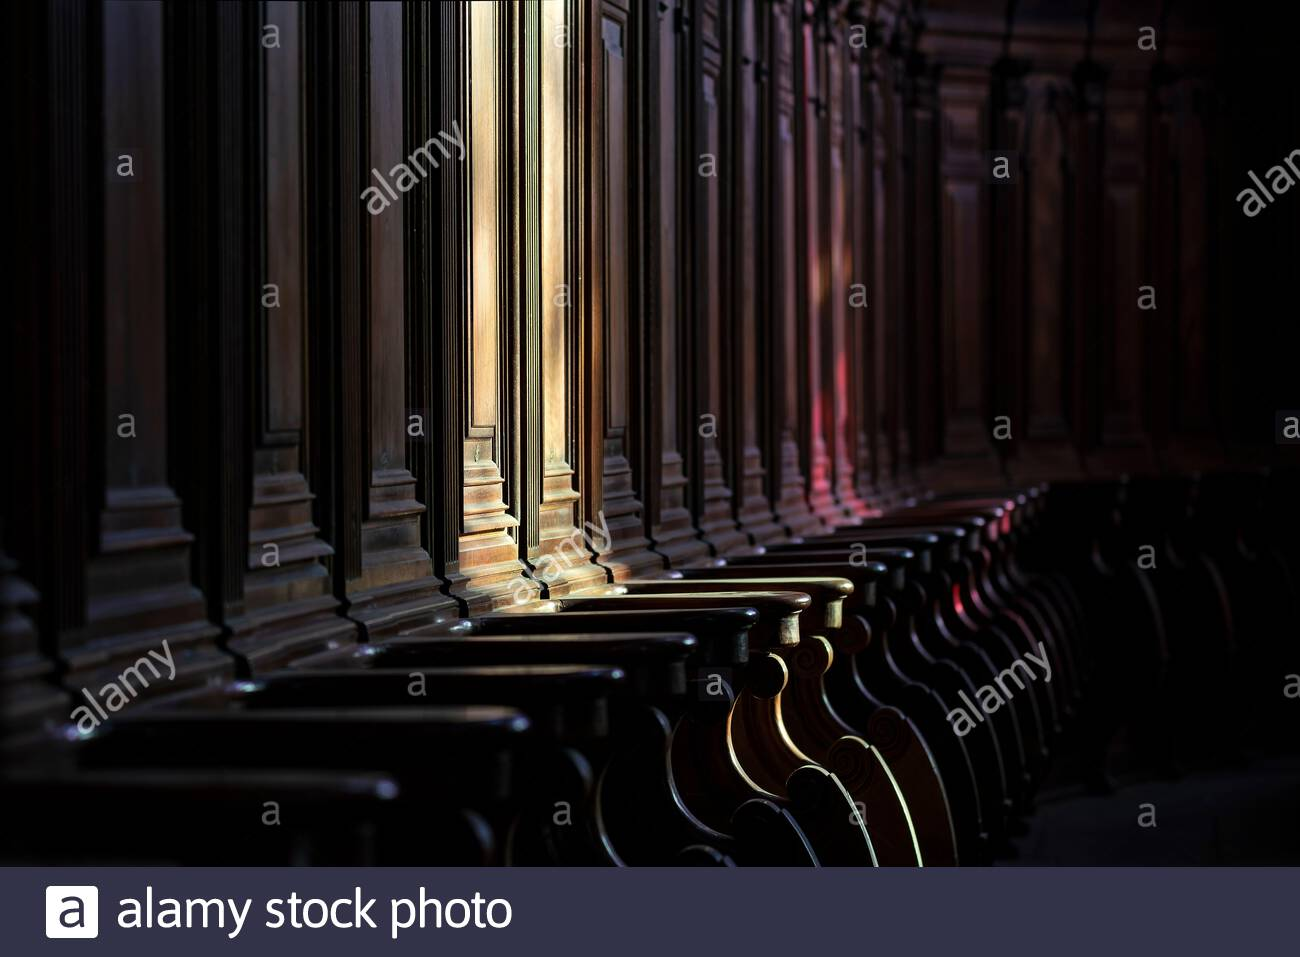 Sunlight coming through stained glass pointing to an empty seat in the ambulatory of a church illustrating the priest shortage in the Catholic Church Stock Photo